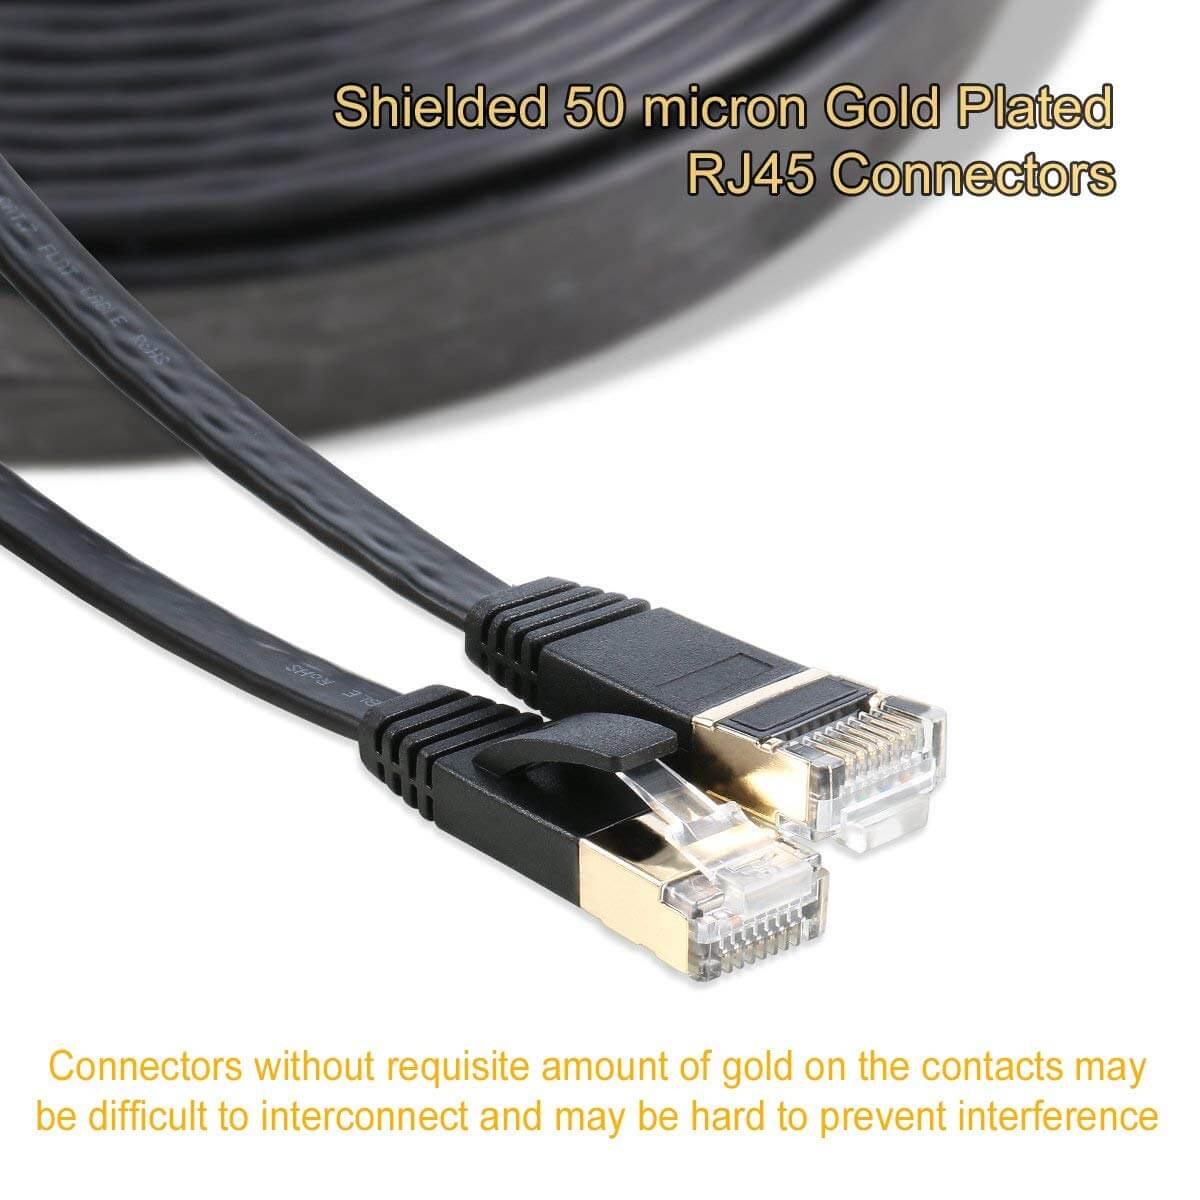 Rj45 Connectors Gold Plated Plug S Stp Wires Networking Cable Wiring